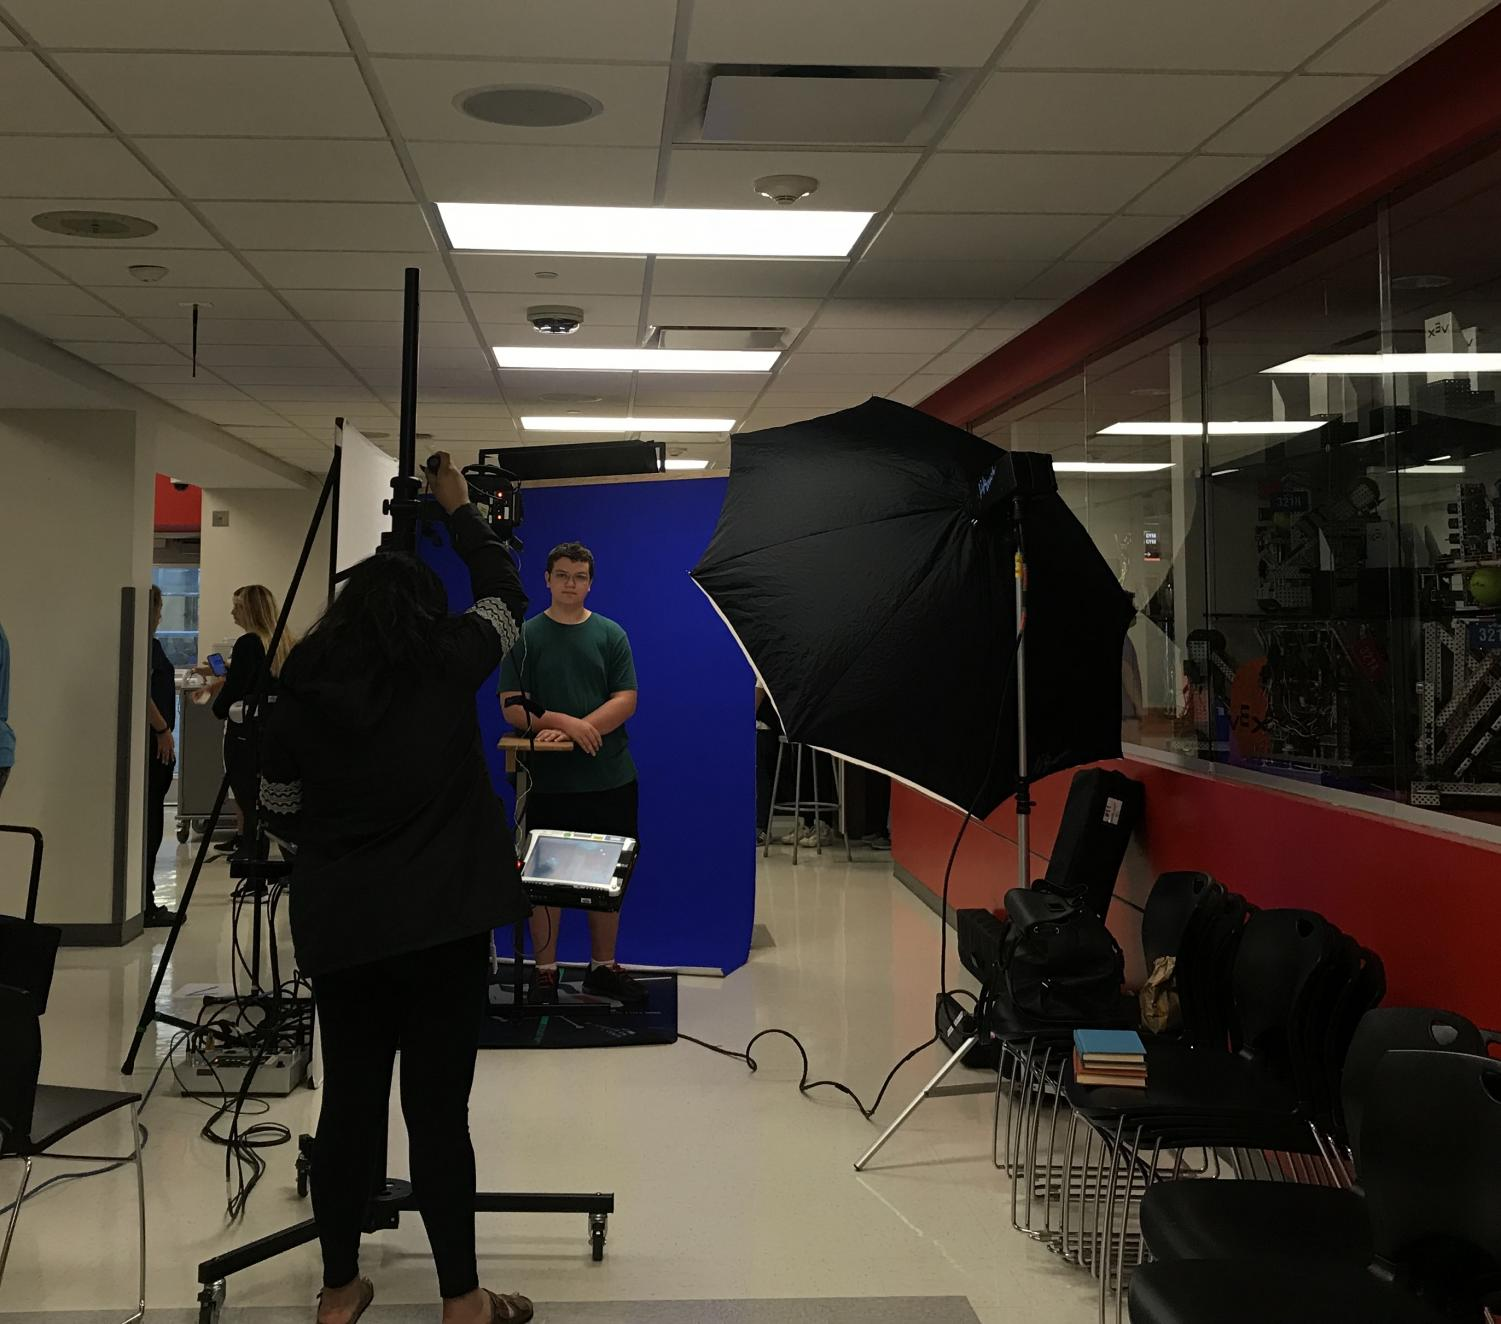 Students getting yearbook pictures taken during school.